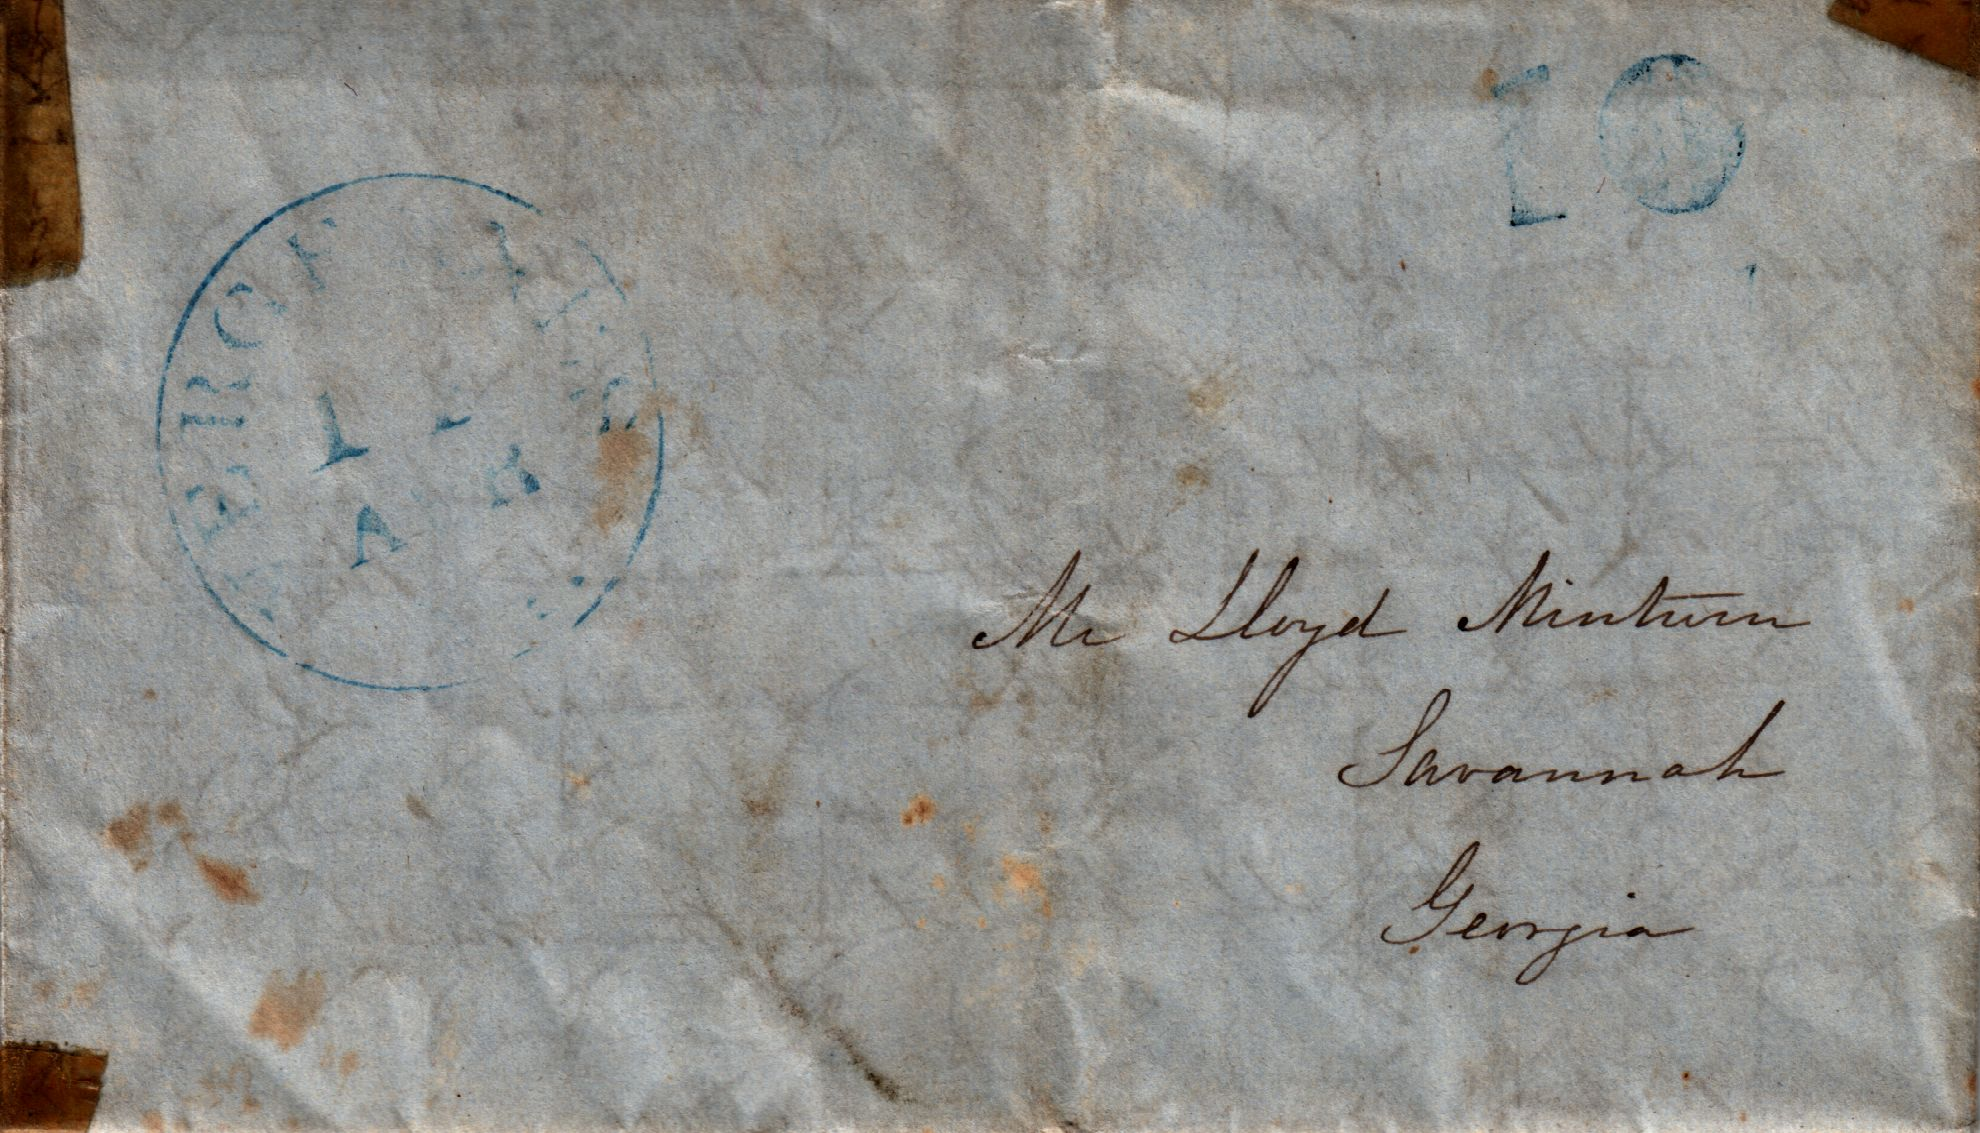 American Civil War Letters - 9 April 1848